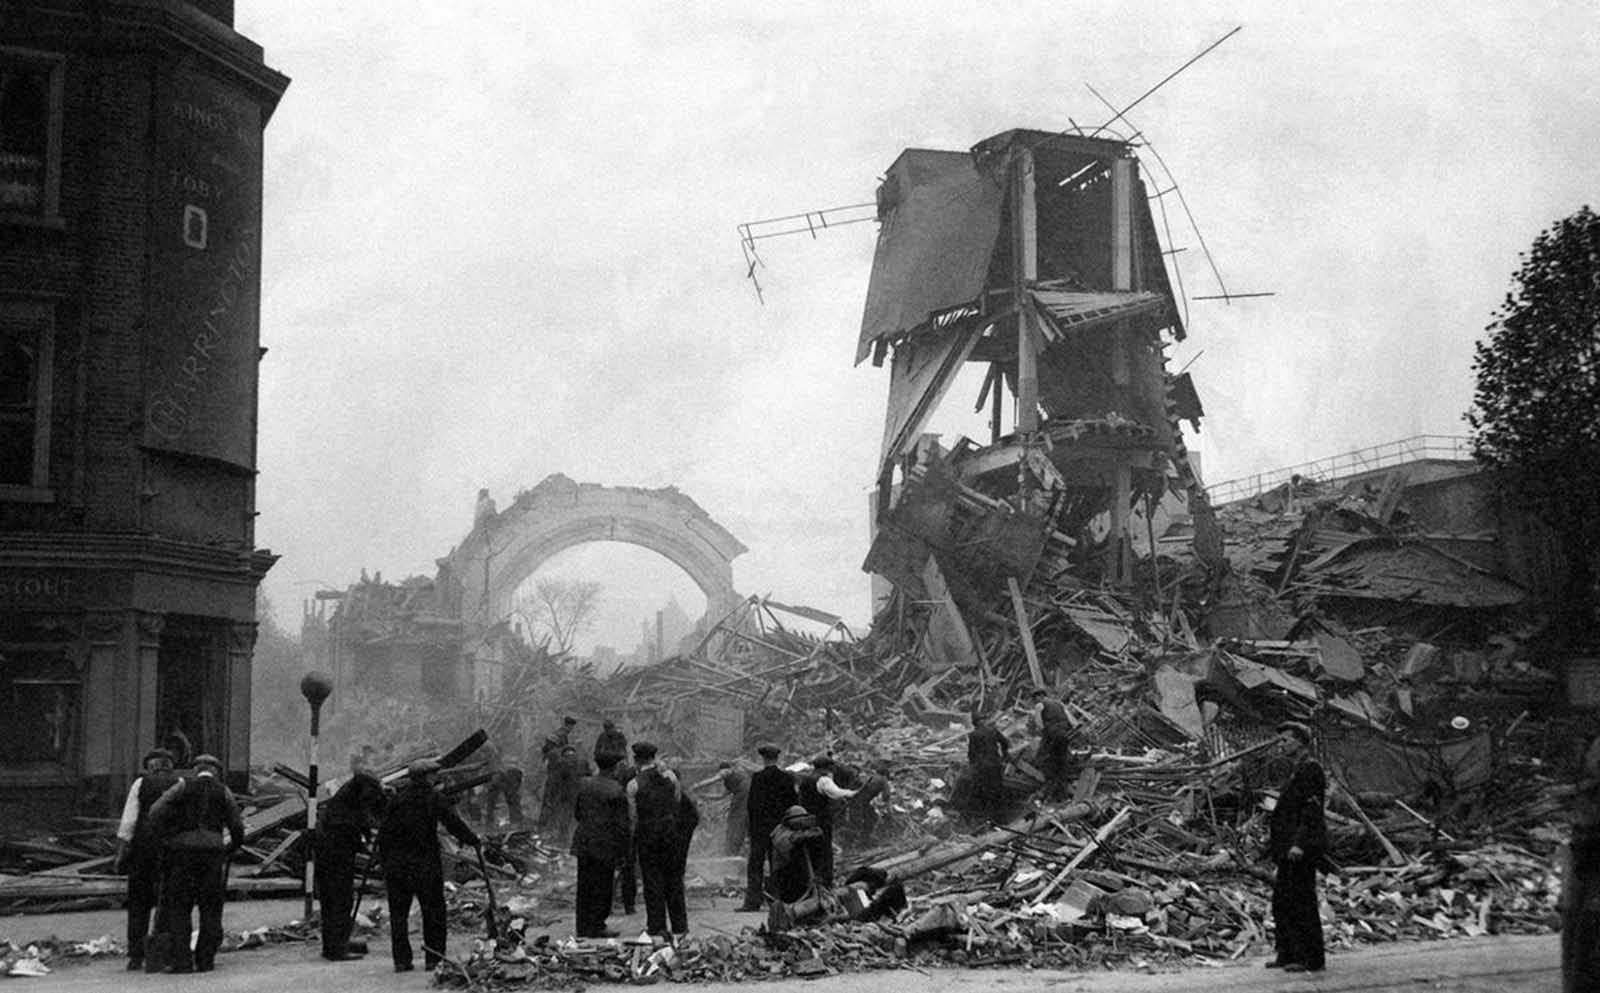 A German raid smashed this hall in an undisclosed London district, on October 16, 1940.